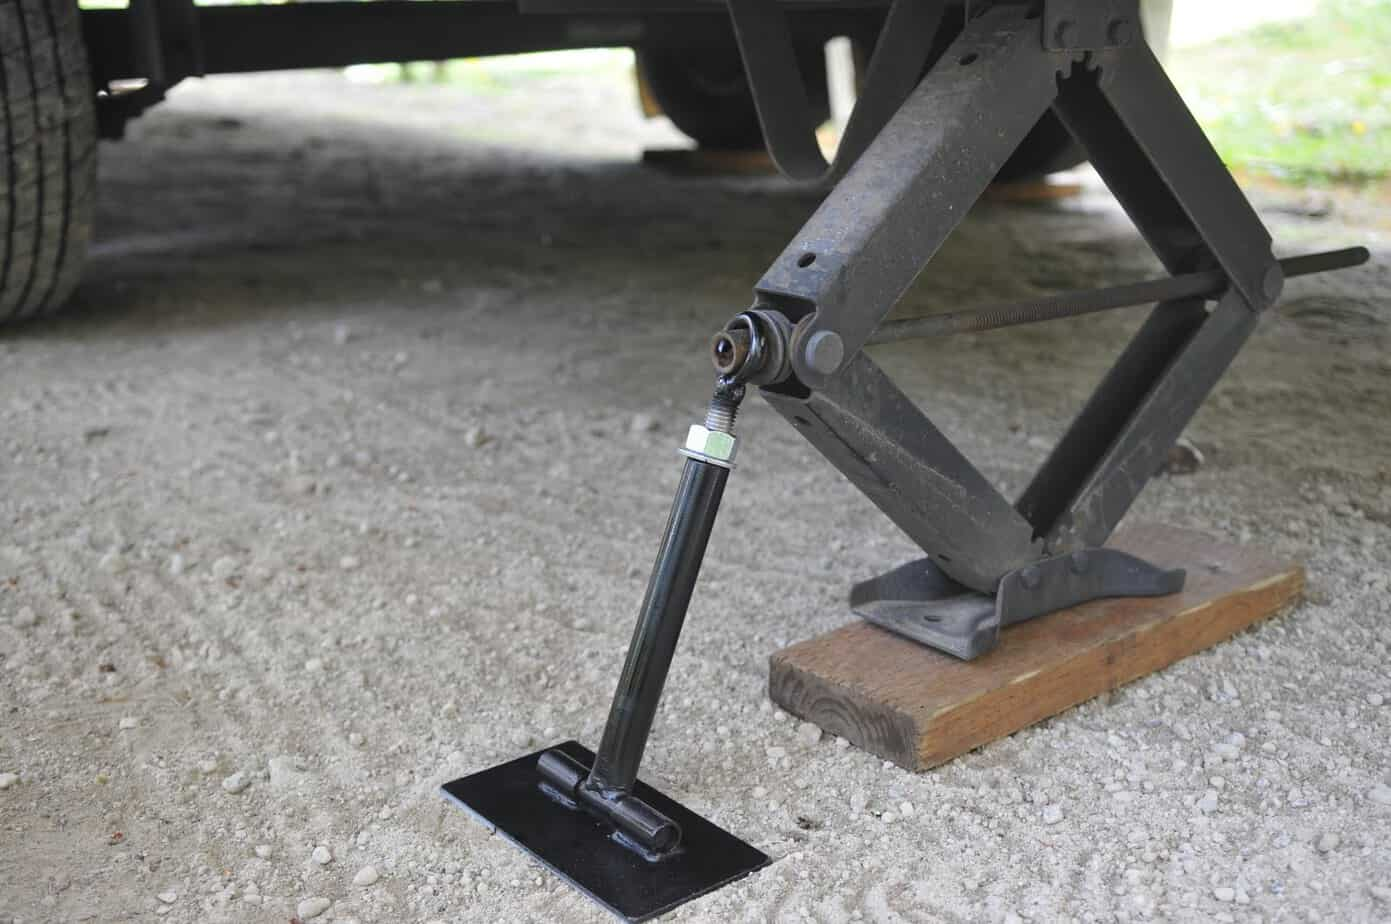 Certain rules on how to use the stabilizer jacks